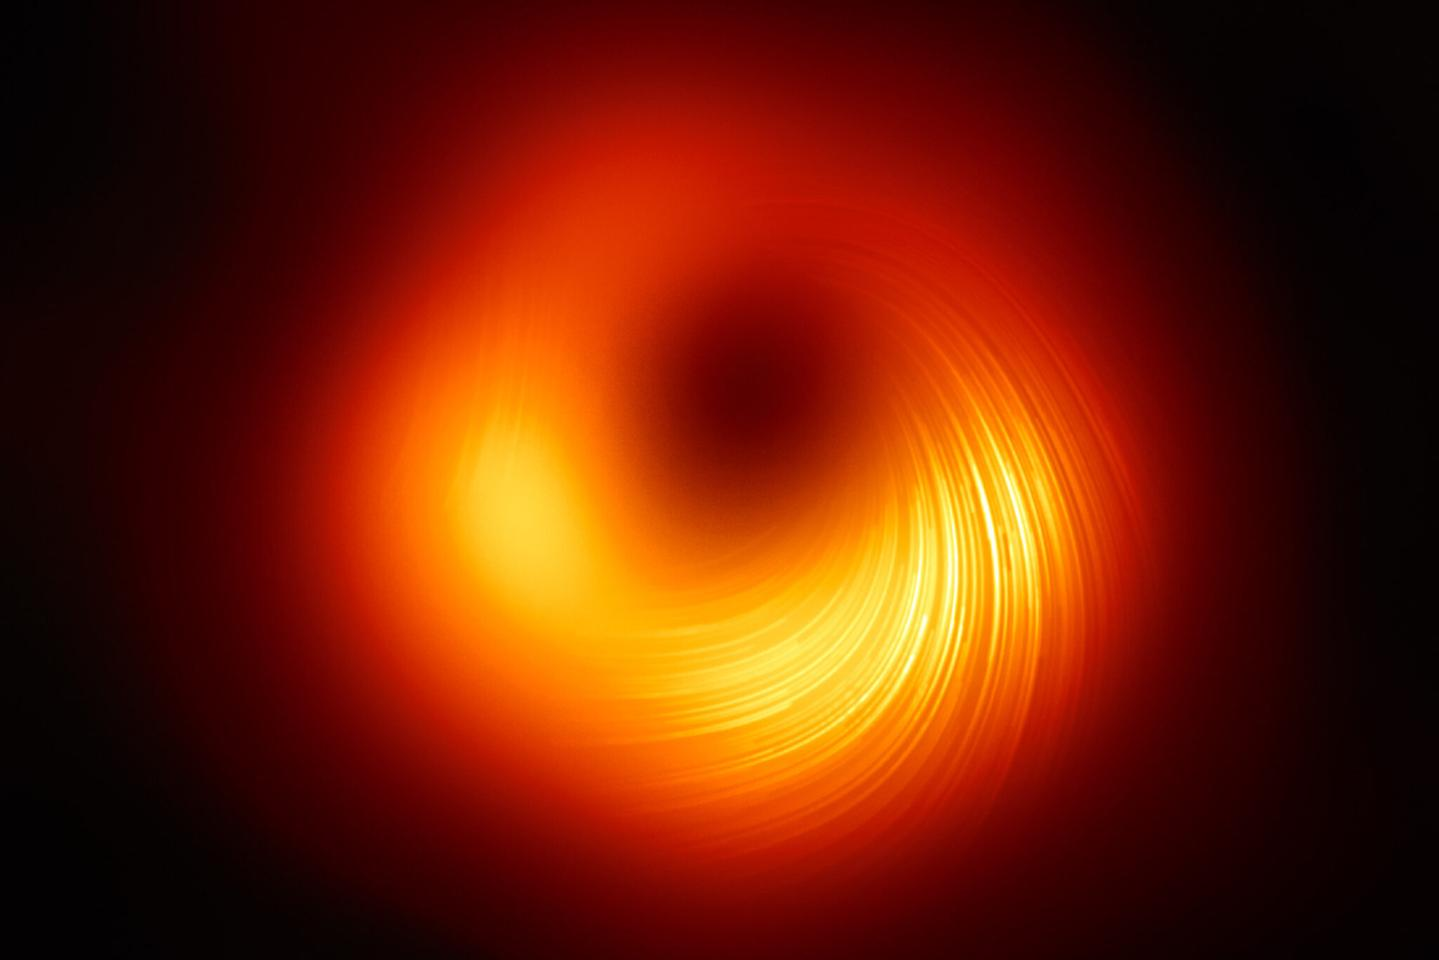 The Event Horizon Telescope (EHT) Collaboration's updated image of the black hole in the galaxy M87 – the white lines represent the polarization of light in the ring, which can reveal new clues about the magnetic field in this extreme environment